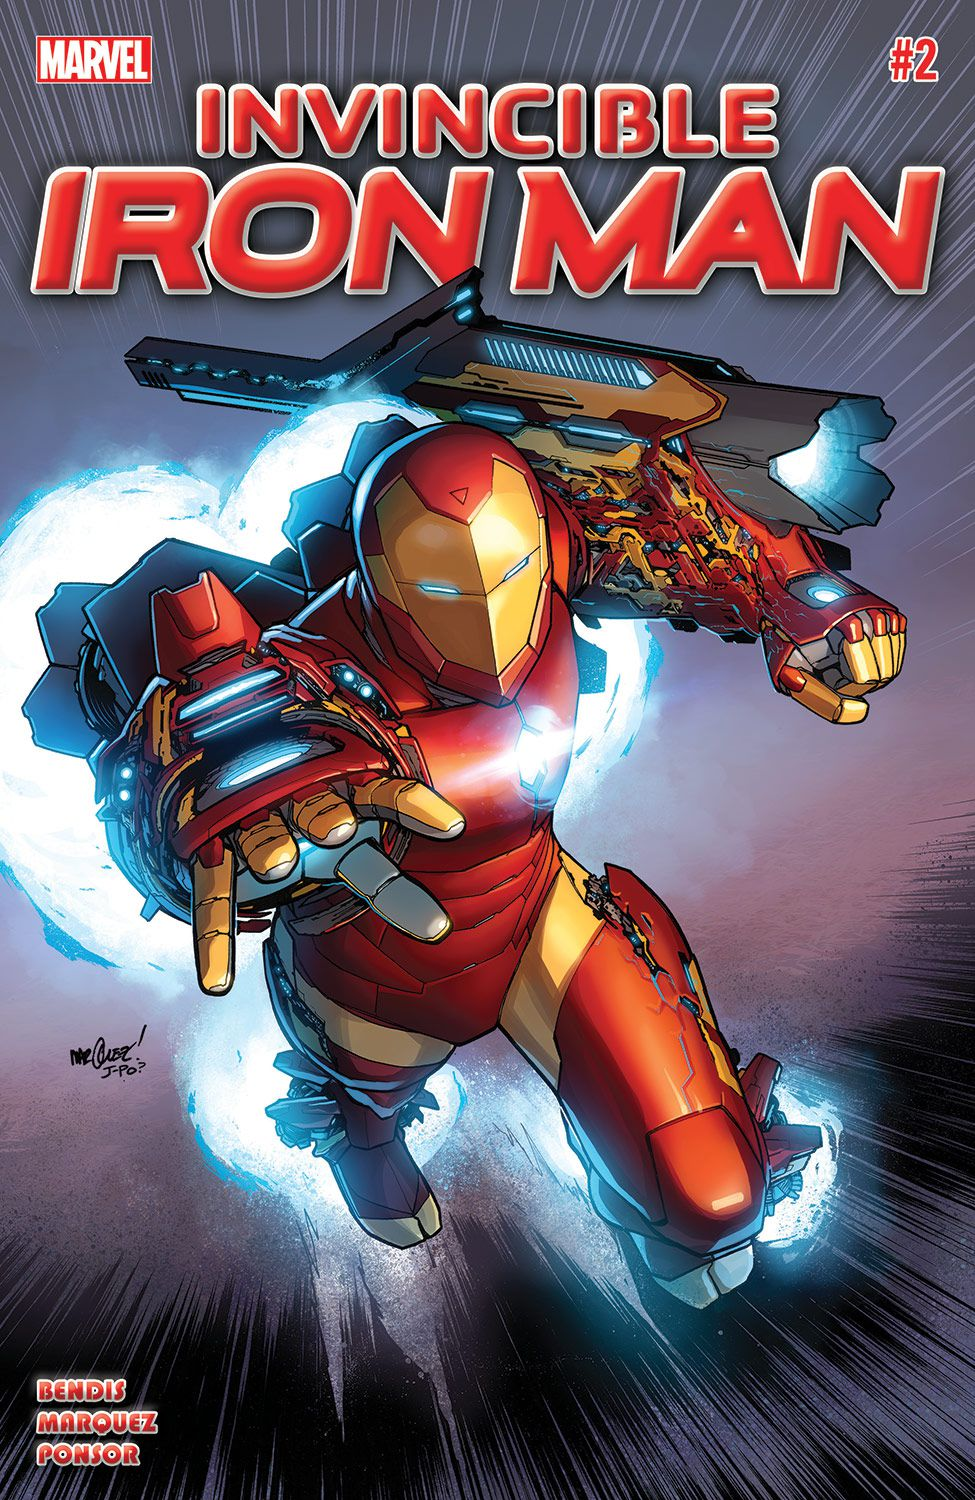 What S Going On With Iron Man S Armor In Avengers Infinity War